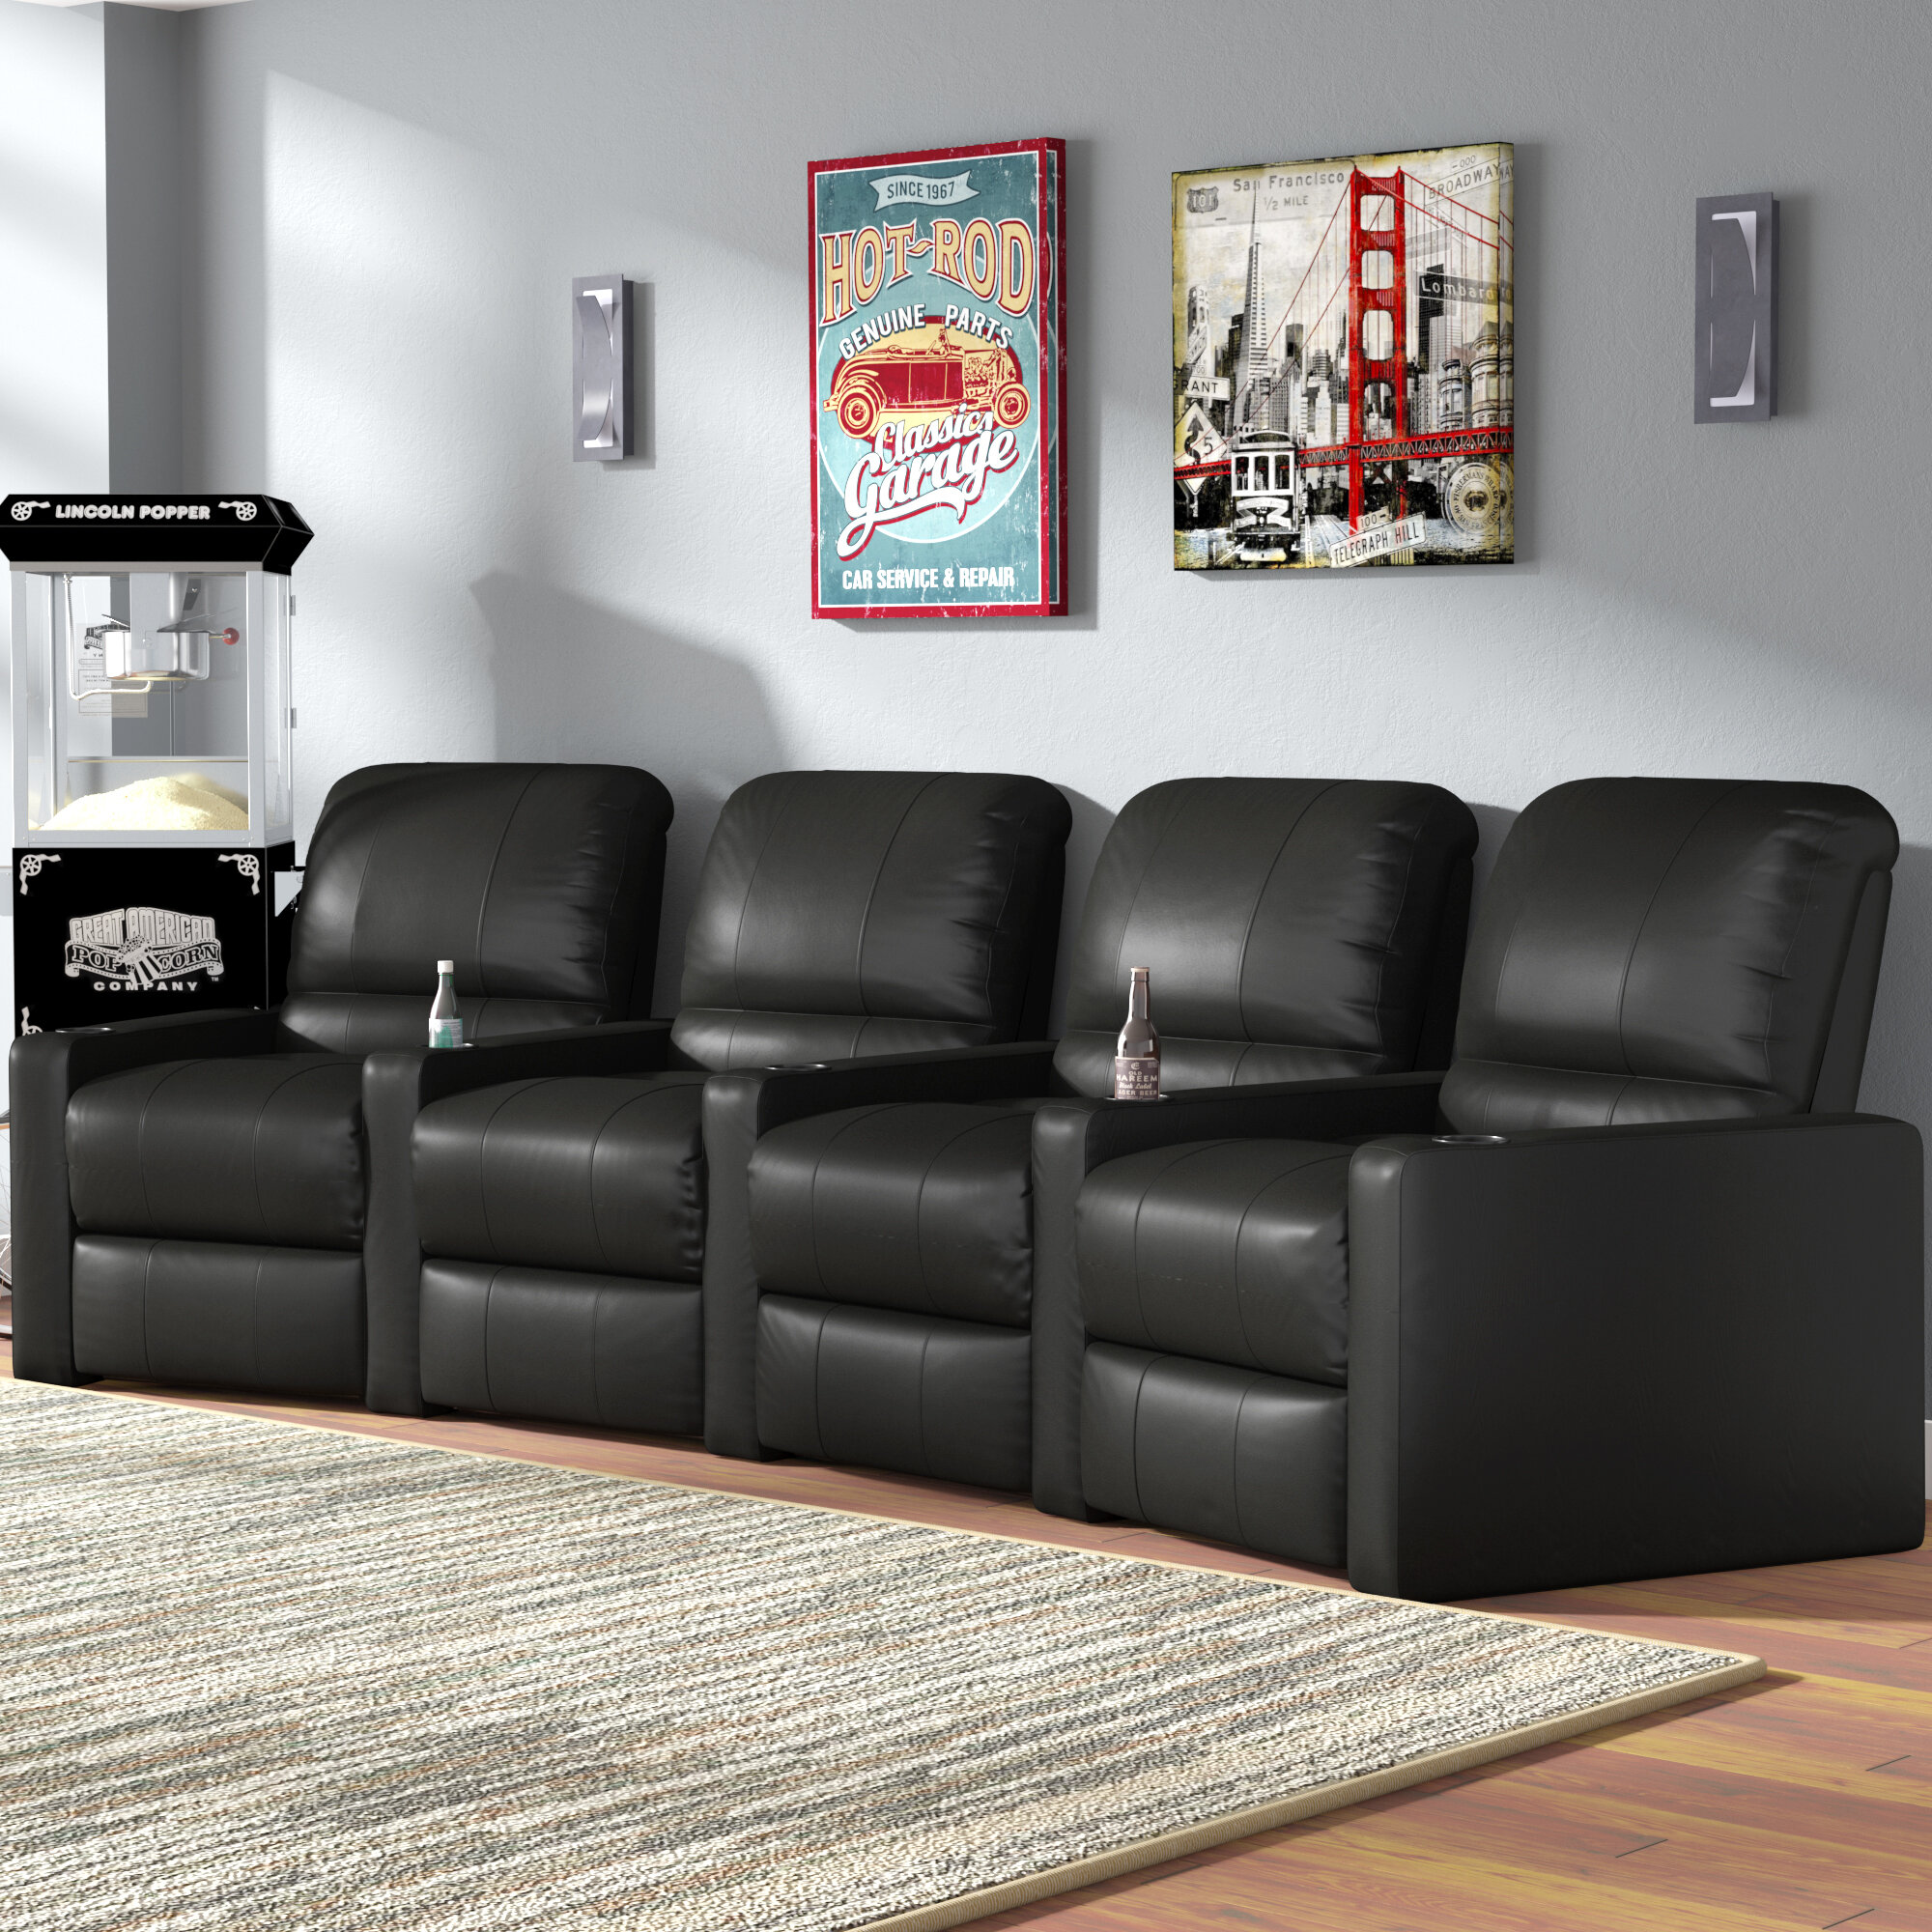 Laude Run Home Theater Curved Row Seating Of 4 Reviews Wayfair